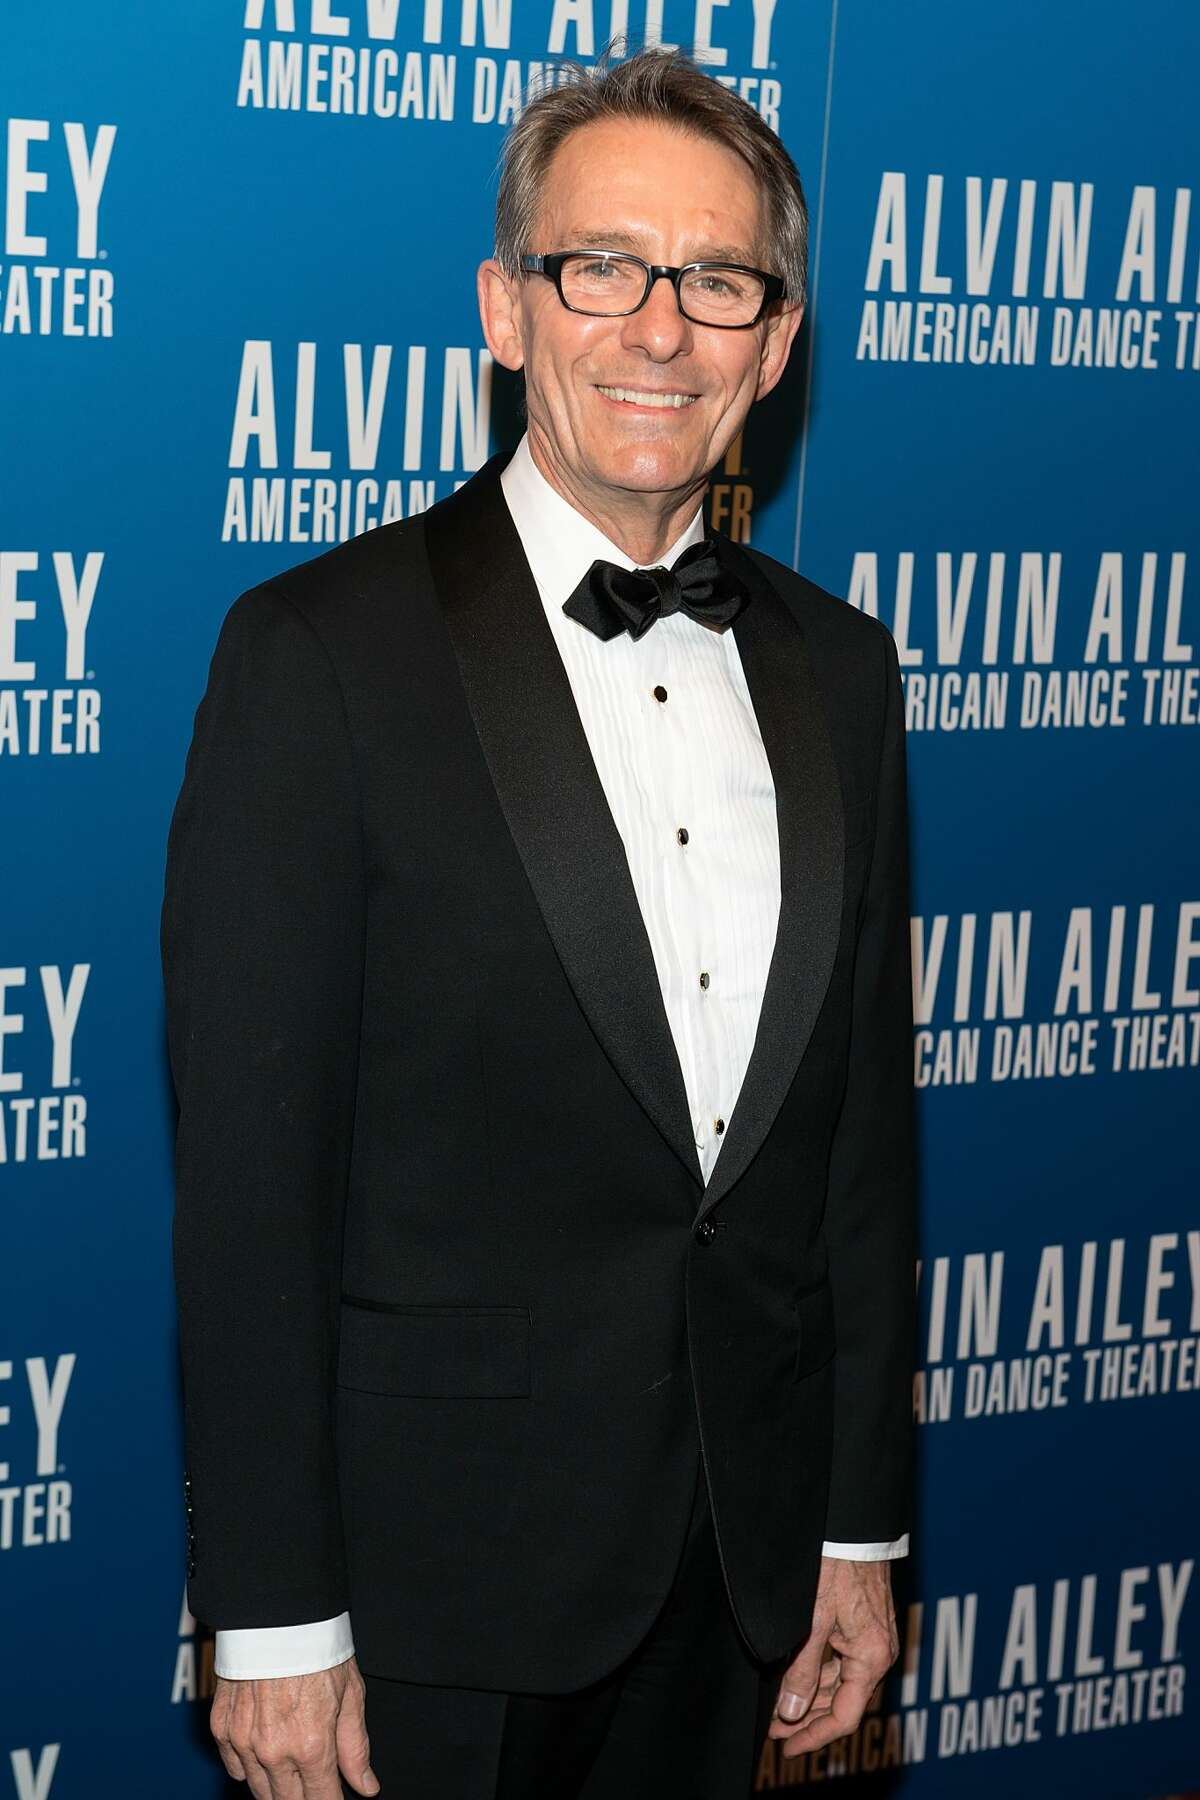 NEW YORK, NY - DECEMBER 04: Theater Director Mark Lamos attends the 2013 Alvin Ailey American Dance Theater's opening night benefit gala at New York City Center on December 4, 2013 in New York City. (Photo by Michael Stewart/WireImage)